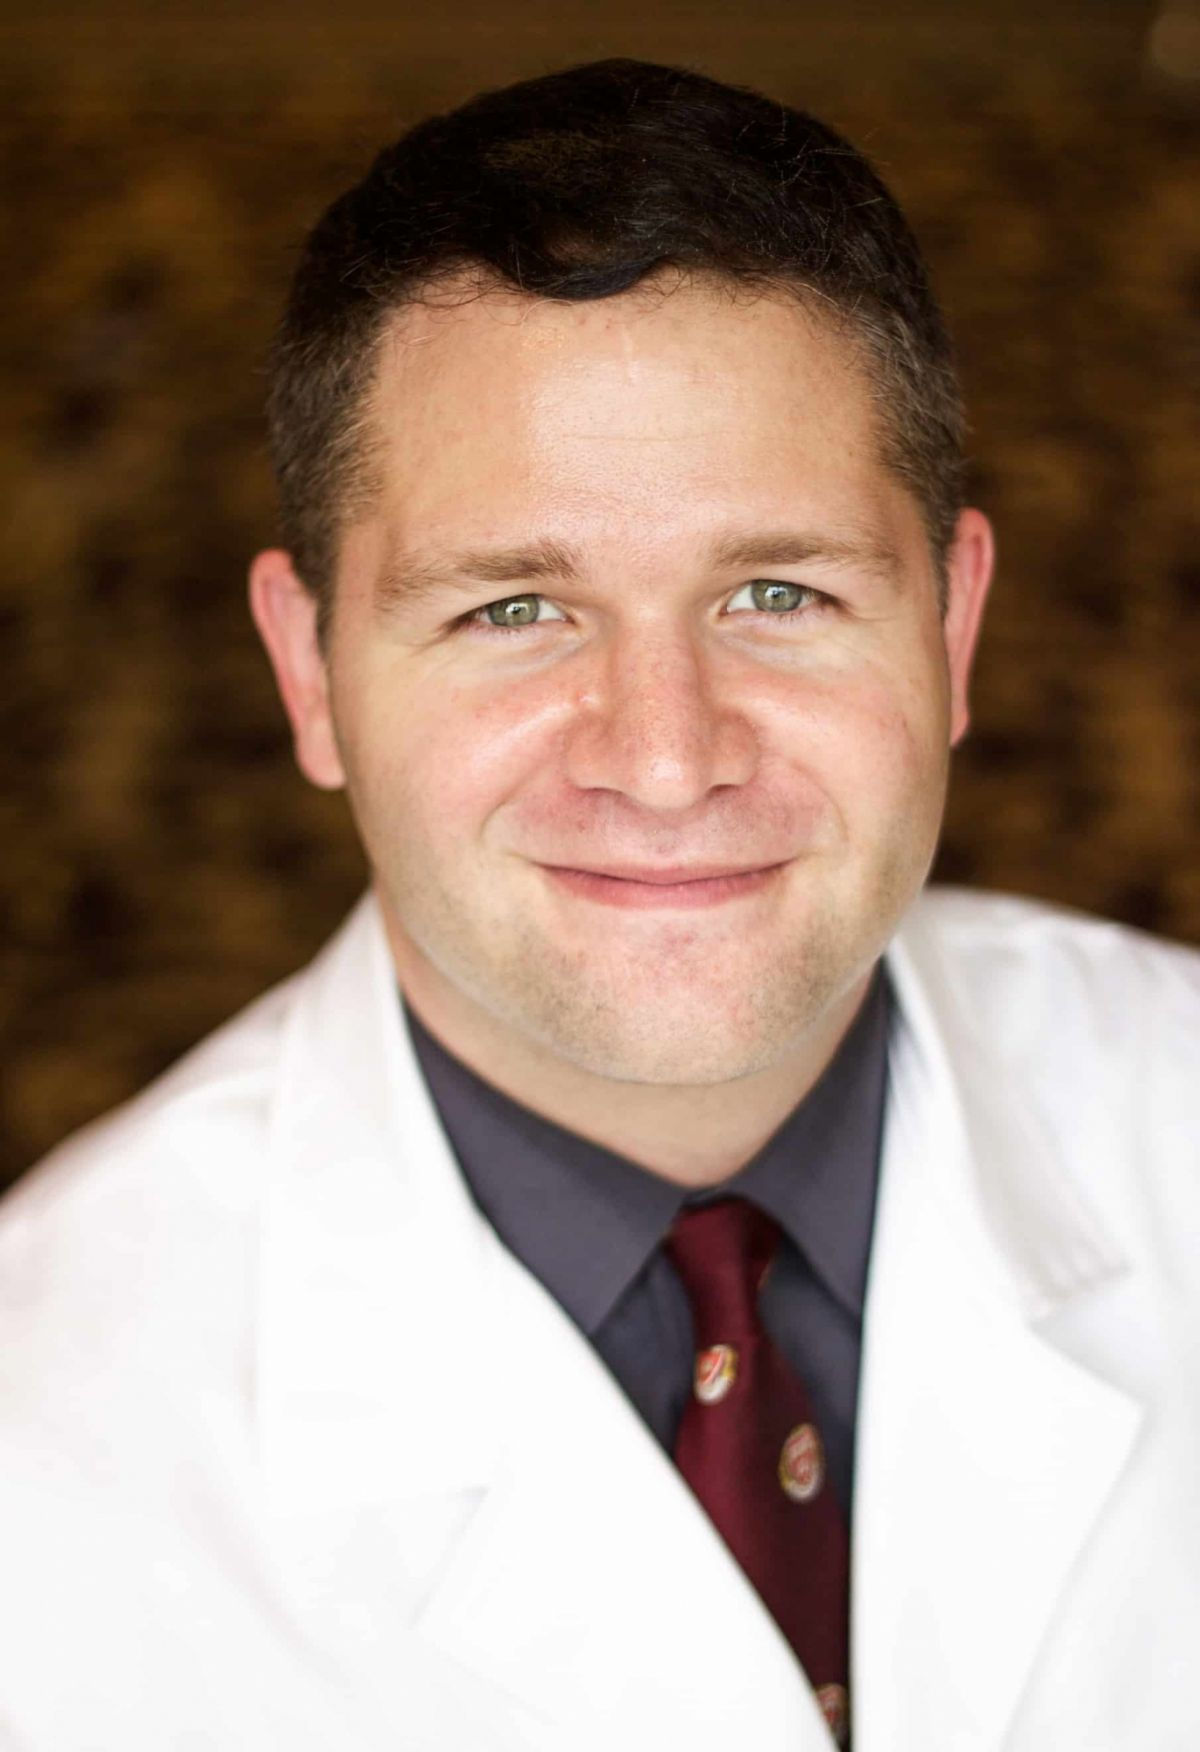 Private: Andrew J. Schoenfeld, MD